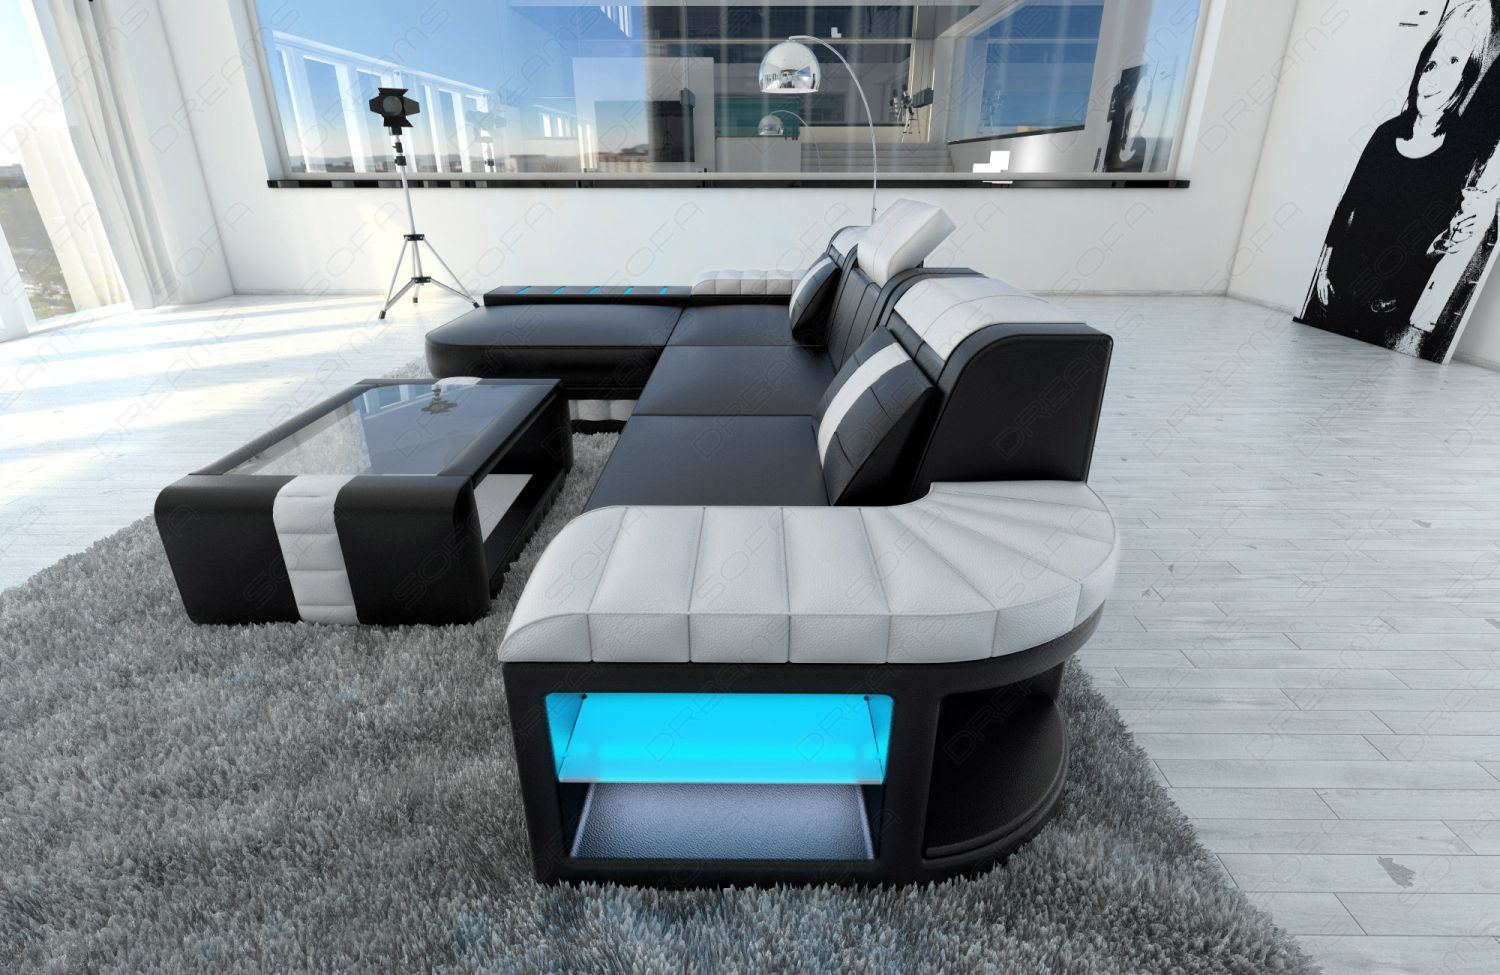 ledersofa bellagio l form designersofa mit led beleuchtung ebay. Black Bedroom Furniture Sets. Home Design Ideas